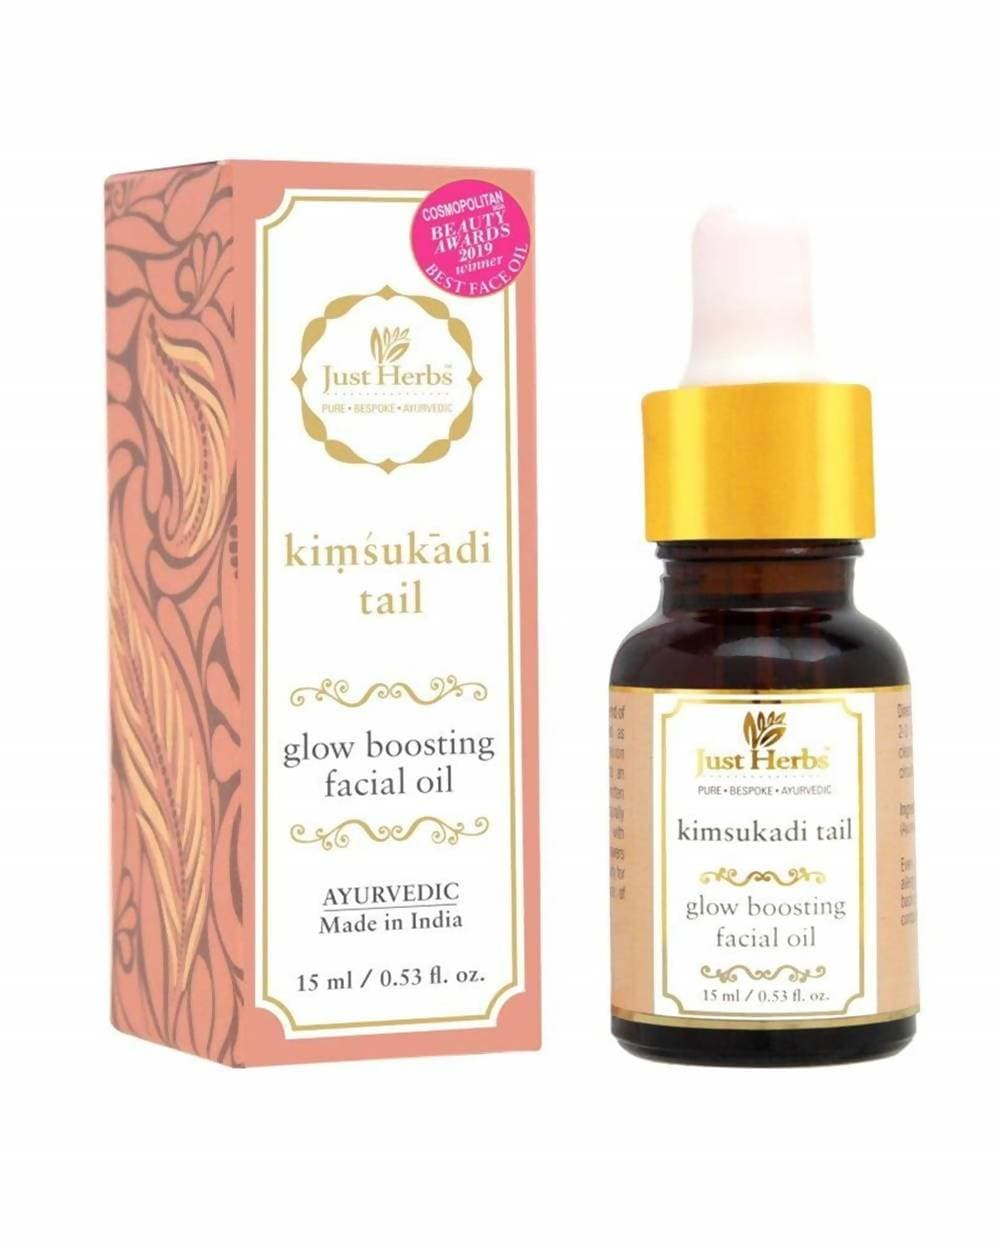 Just Herbs Ayurvedic Kimsukadi Tail Glow Boosting Facial Oil